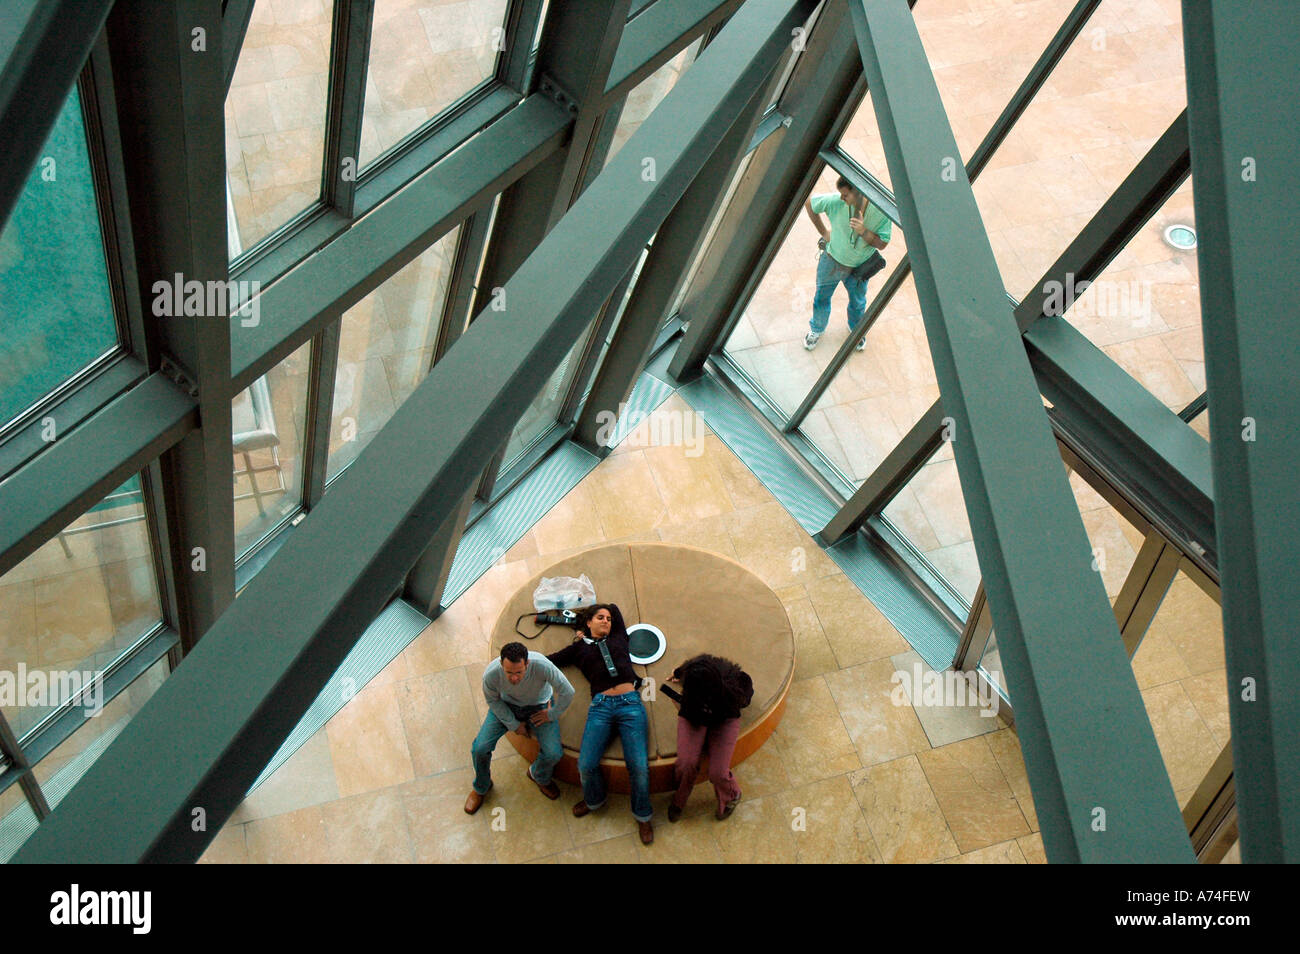 Guggenheim museum BILBAO Biscay Basque Country Spain - Stock Image